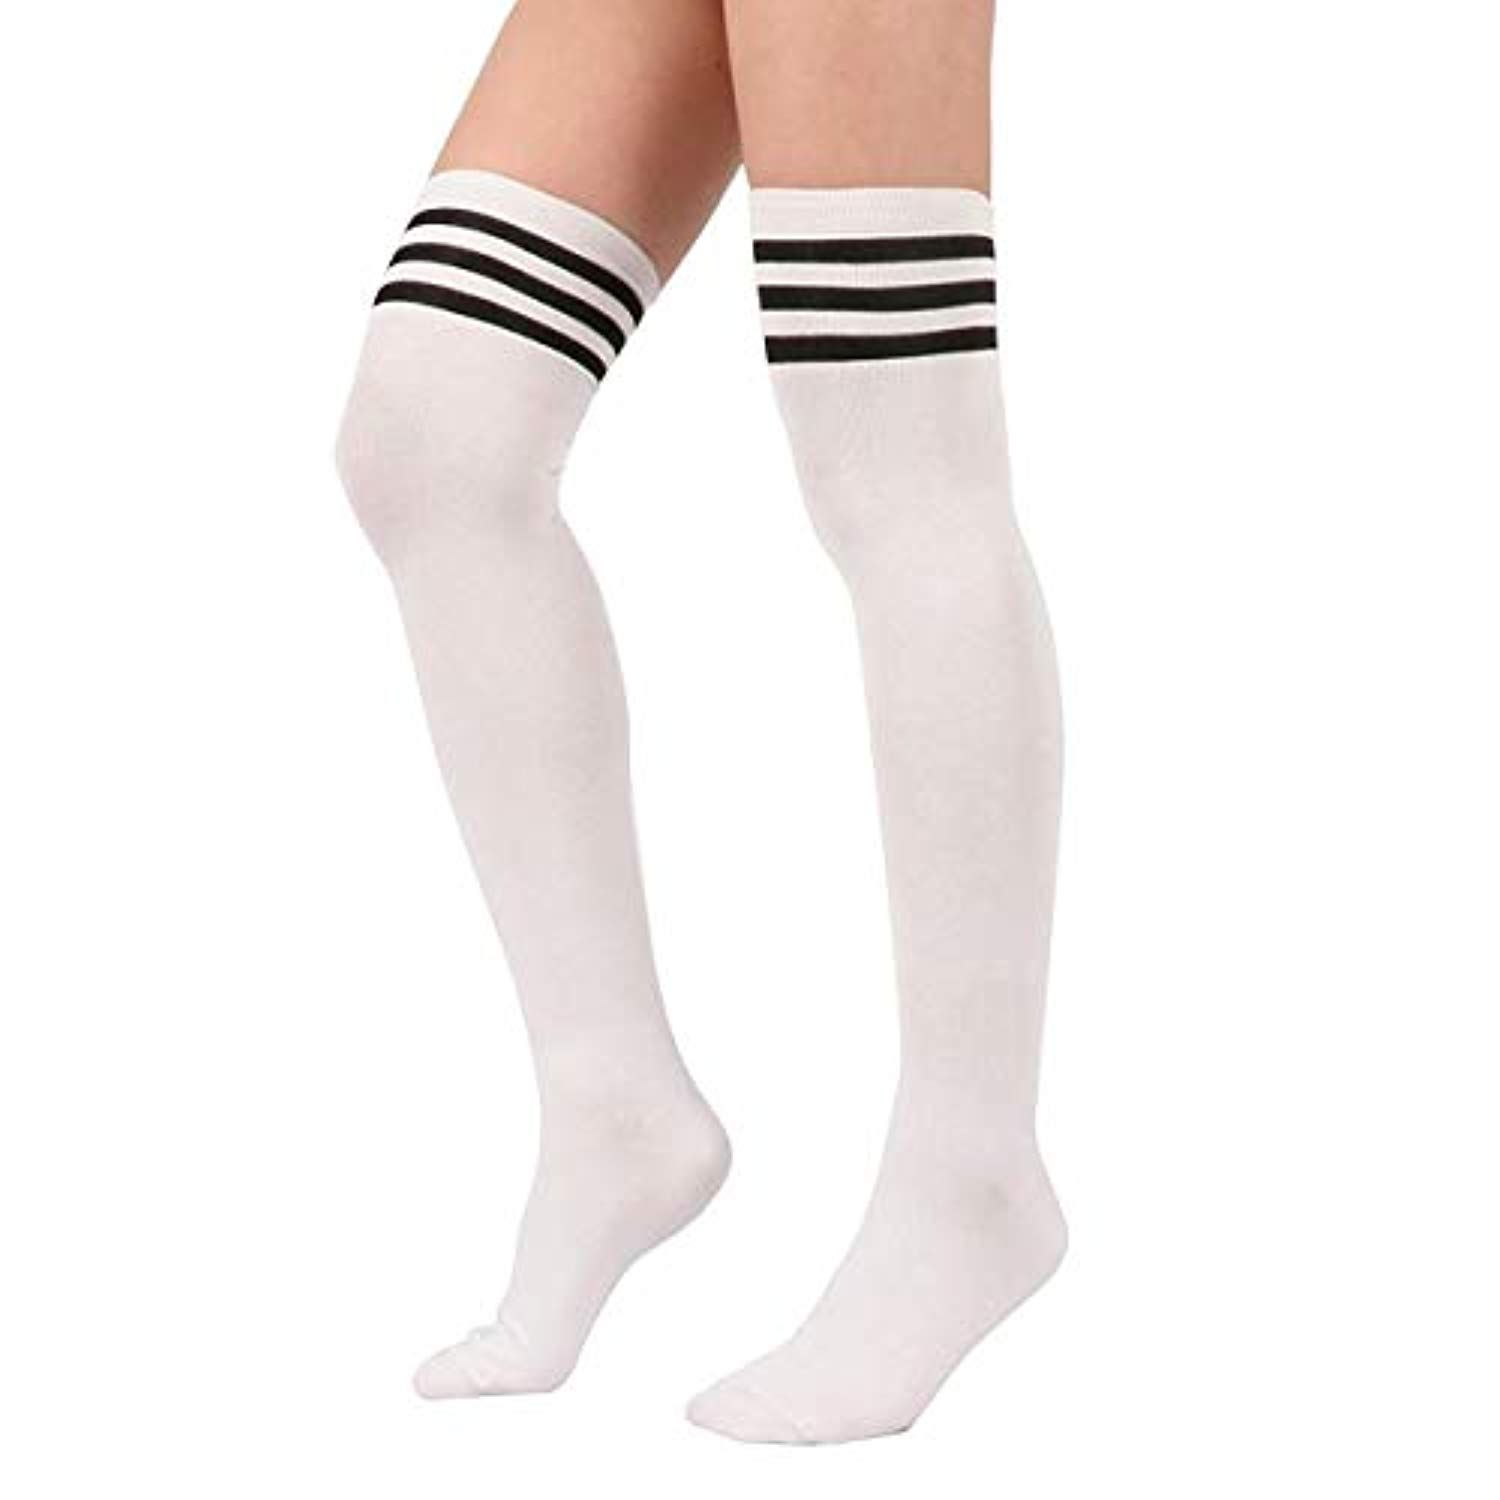 2c8cf8831a6 Womens Striped Knee High Socks Cotton Athletic Over the Knee Tube Socks  Thigh High Stockings    Check out this great product. (This is an affiliate  link)   ...